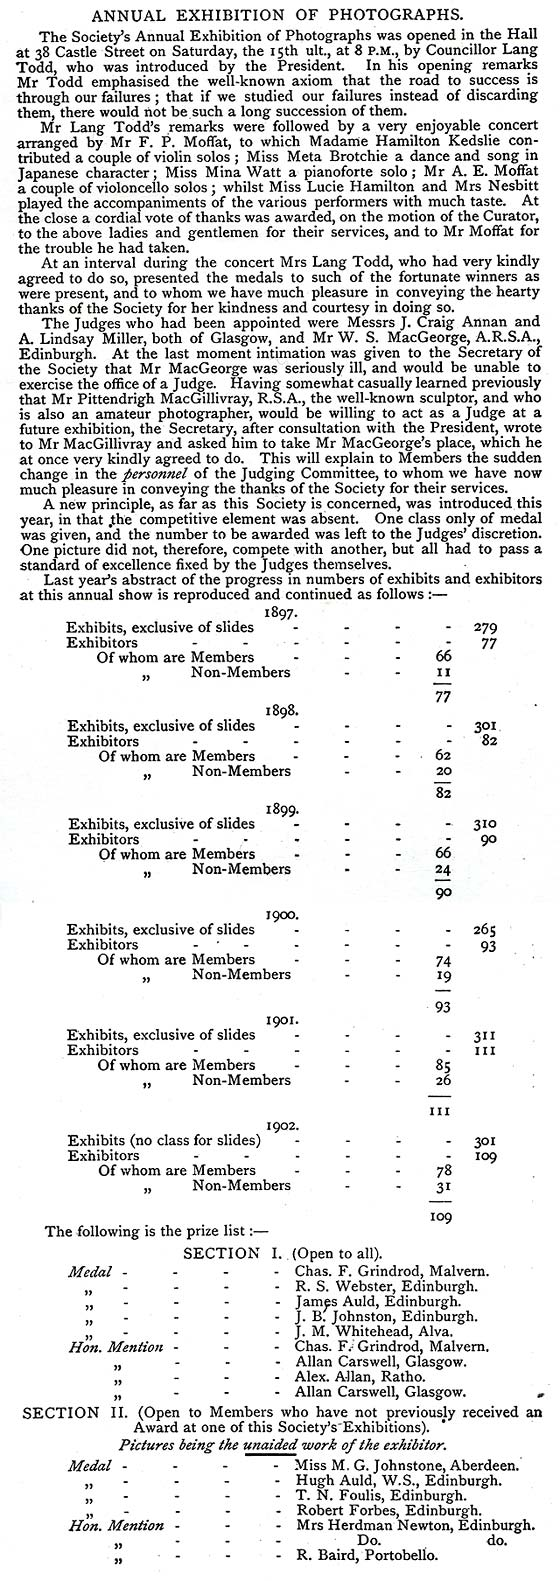 Report of the EPS Exhibition held in February 1902, including numbers for some previous years' exhibitions